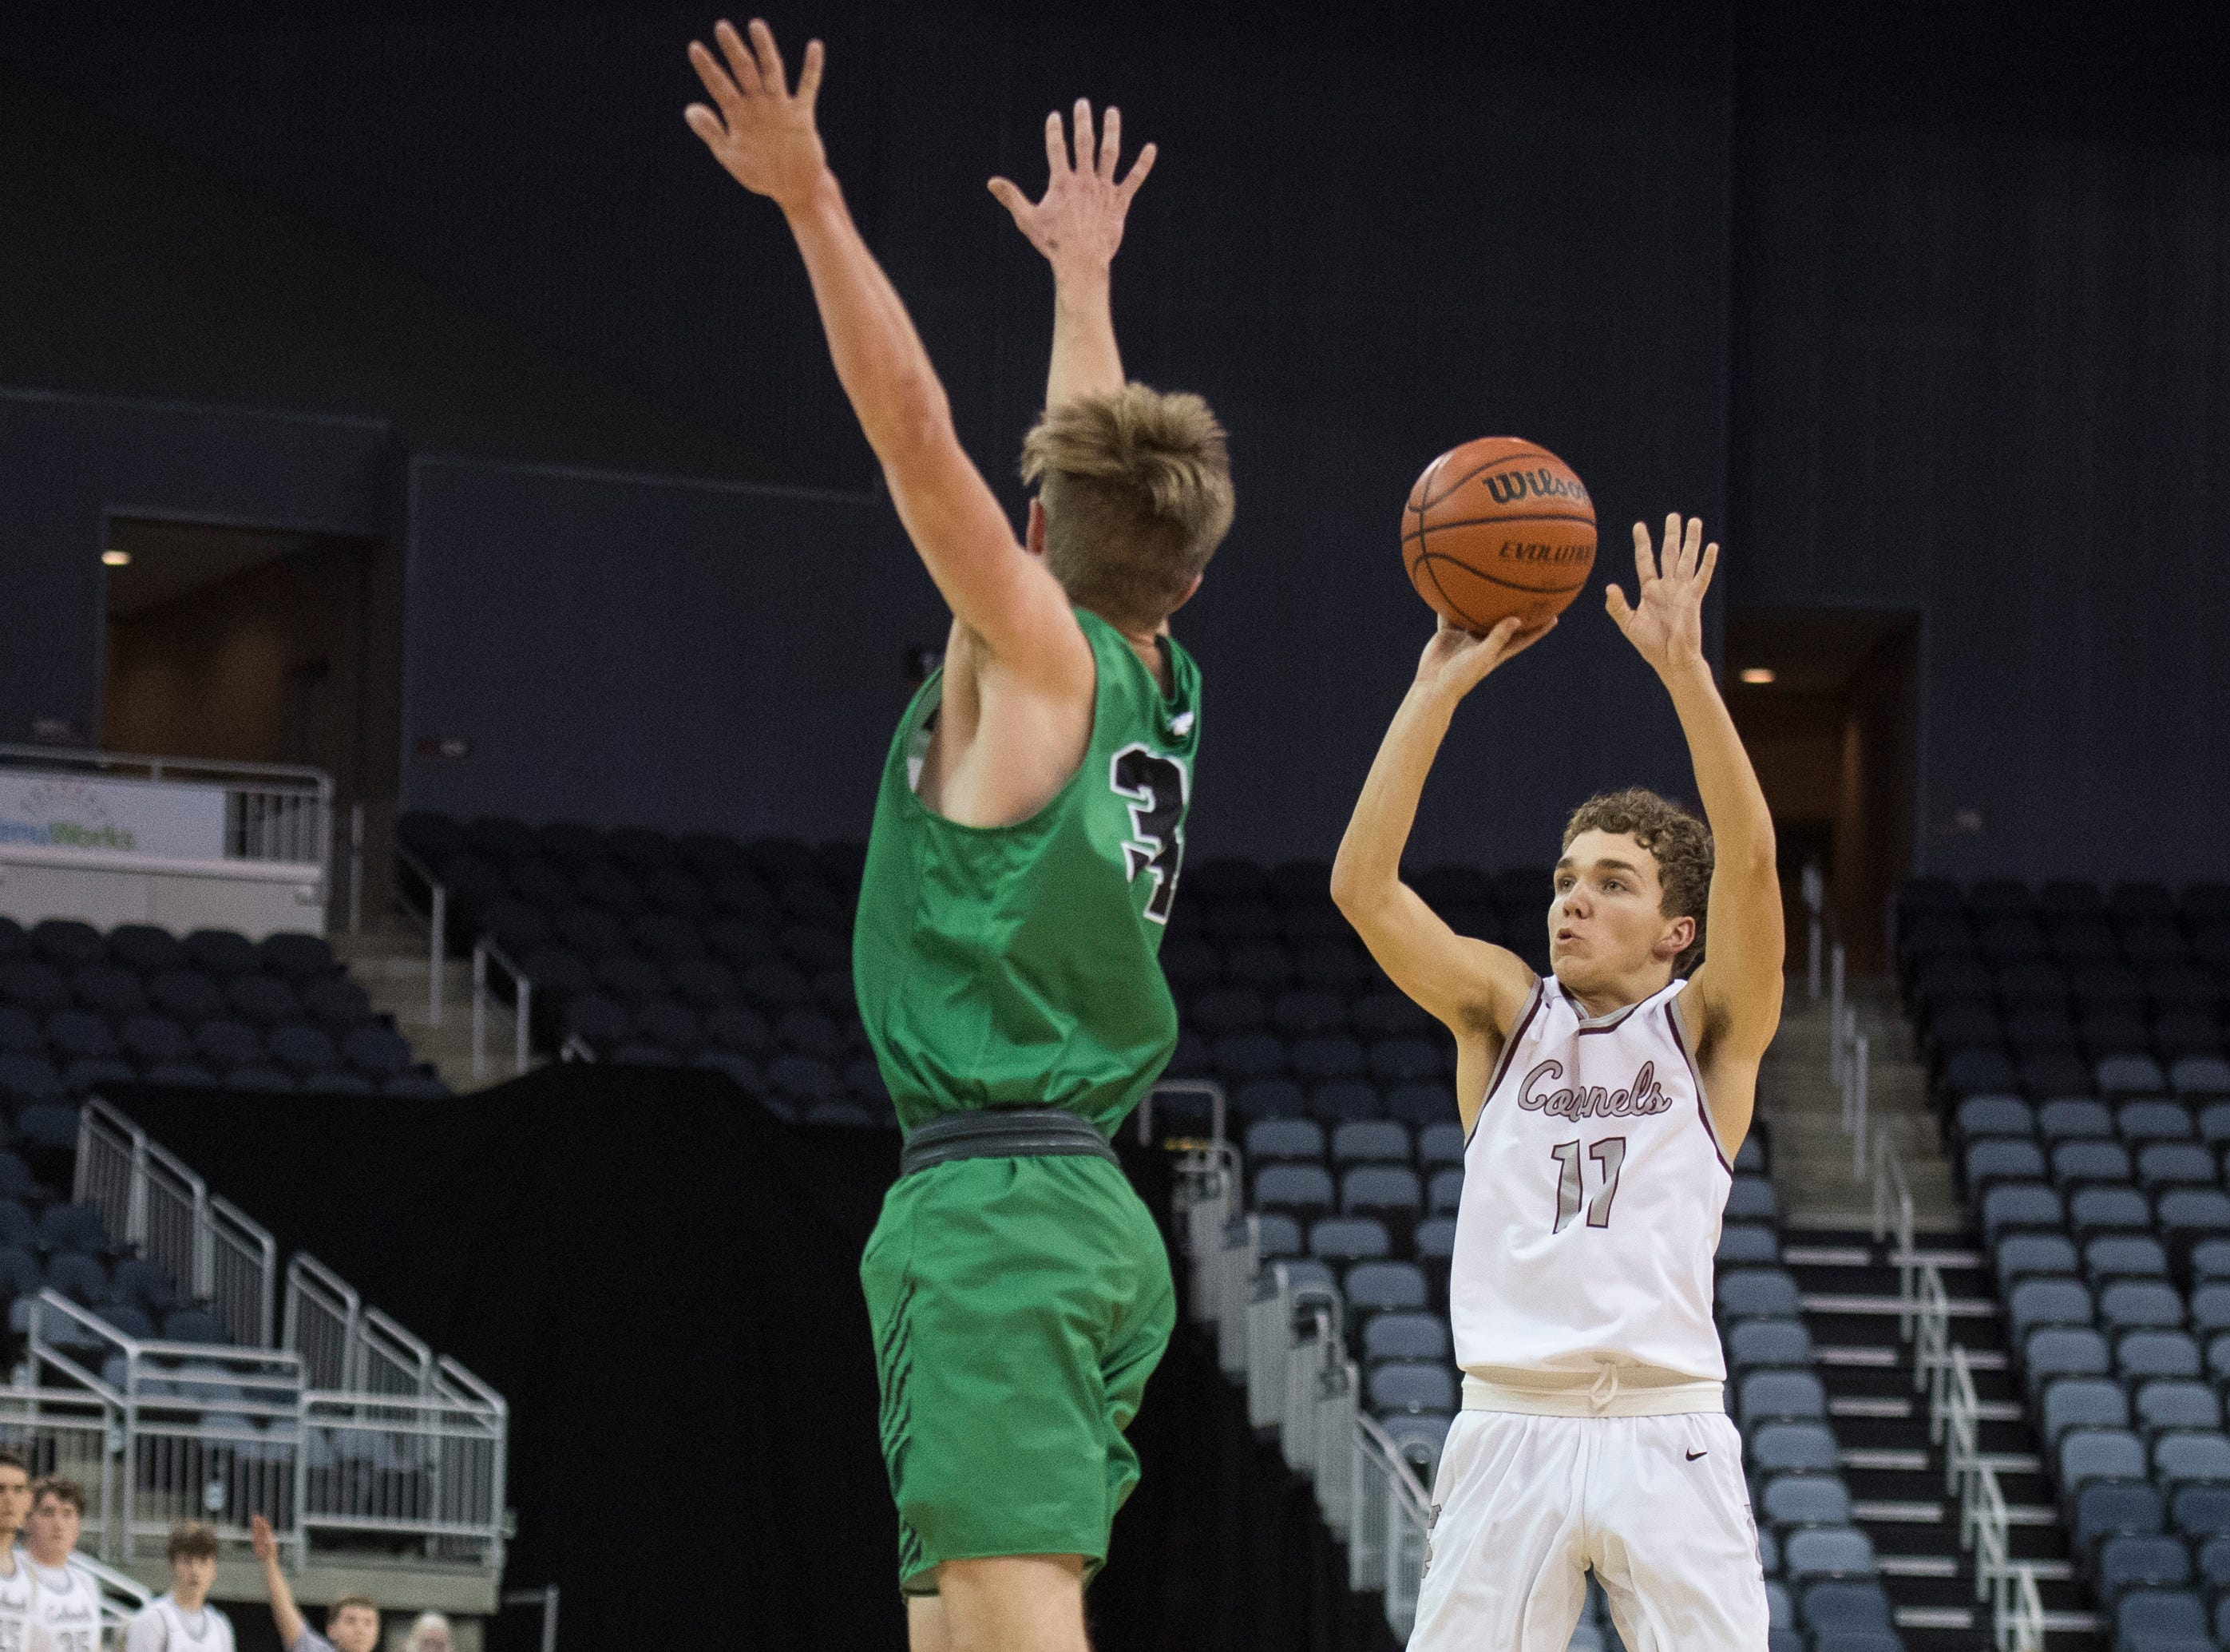 Henderson's Luke Fulkerson (11) takes a jump shot during the Henderson County vs Evansville North basketball game in the River City Showcase at the Ford Center Friday, Dec. 7, 2018.